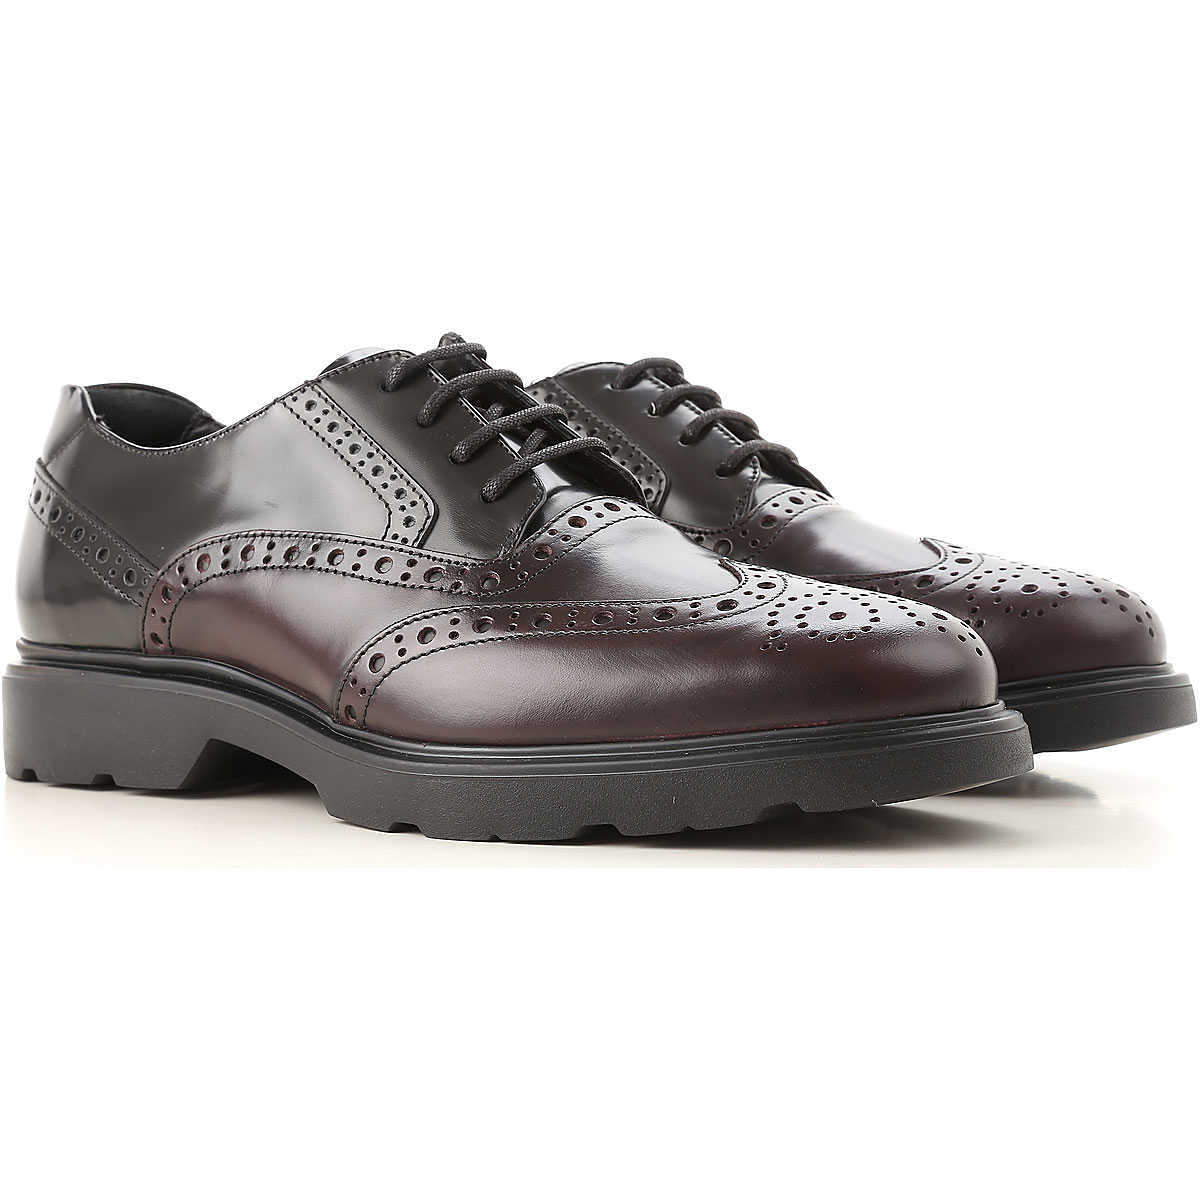 Hogan Lace Up Shoes for Men Oxfords Derbies and Brogues On Sale Canada - GOOFASH - Mens FORMAL SHOES